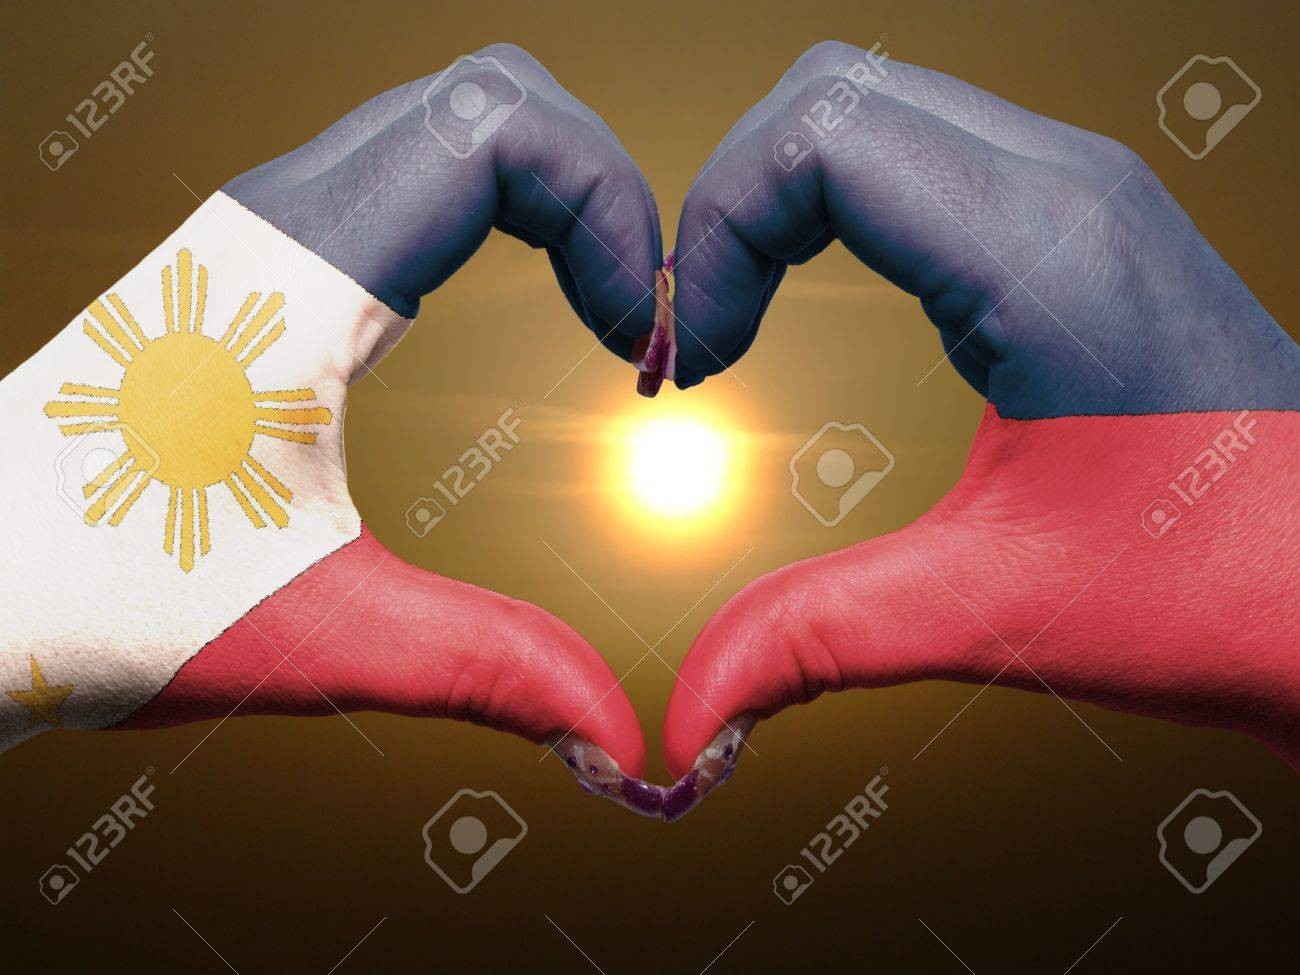 Tourist made gesture by philippines flag colored hands showing tourist made gesture by philippines flag colored hands showing symbol of heart and love during sunrise buycottarizona Images